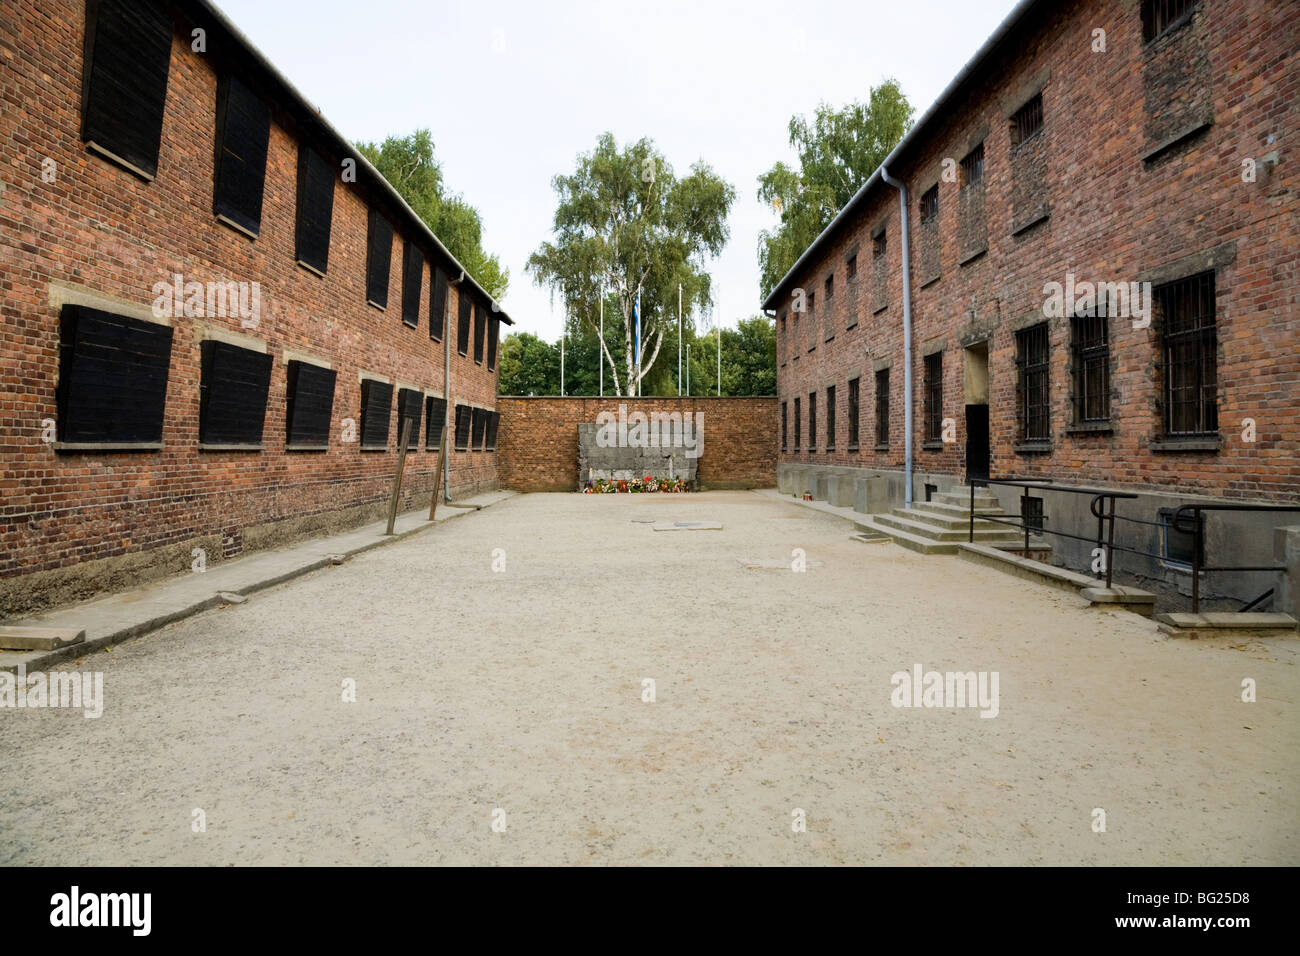 Execution yard between accommodation blocks 10 11 where prisoners were shot / executed by firing squad.  Auschwitz - Stock Image